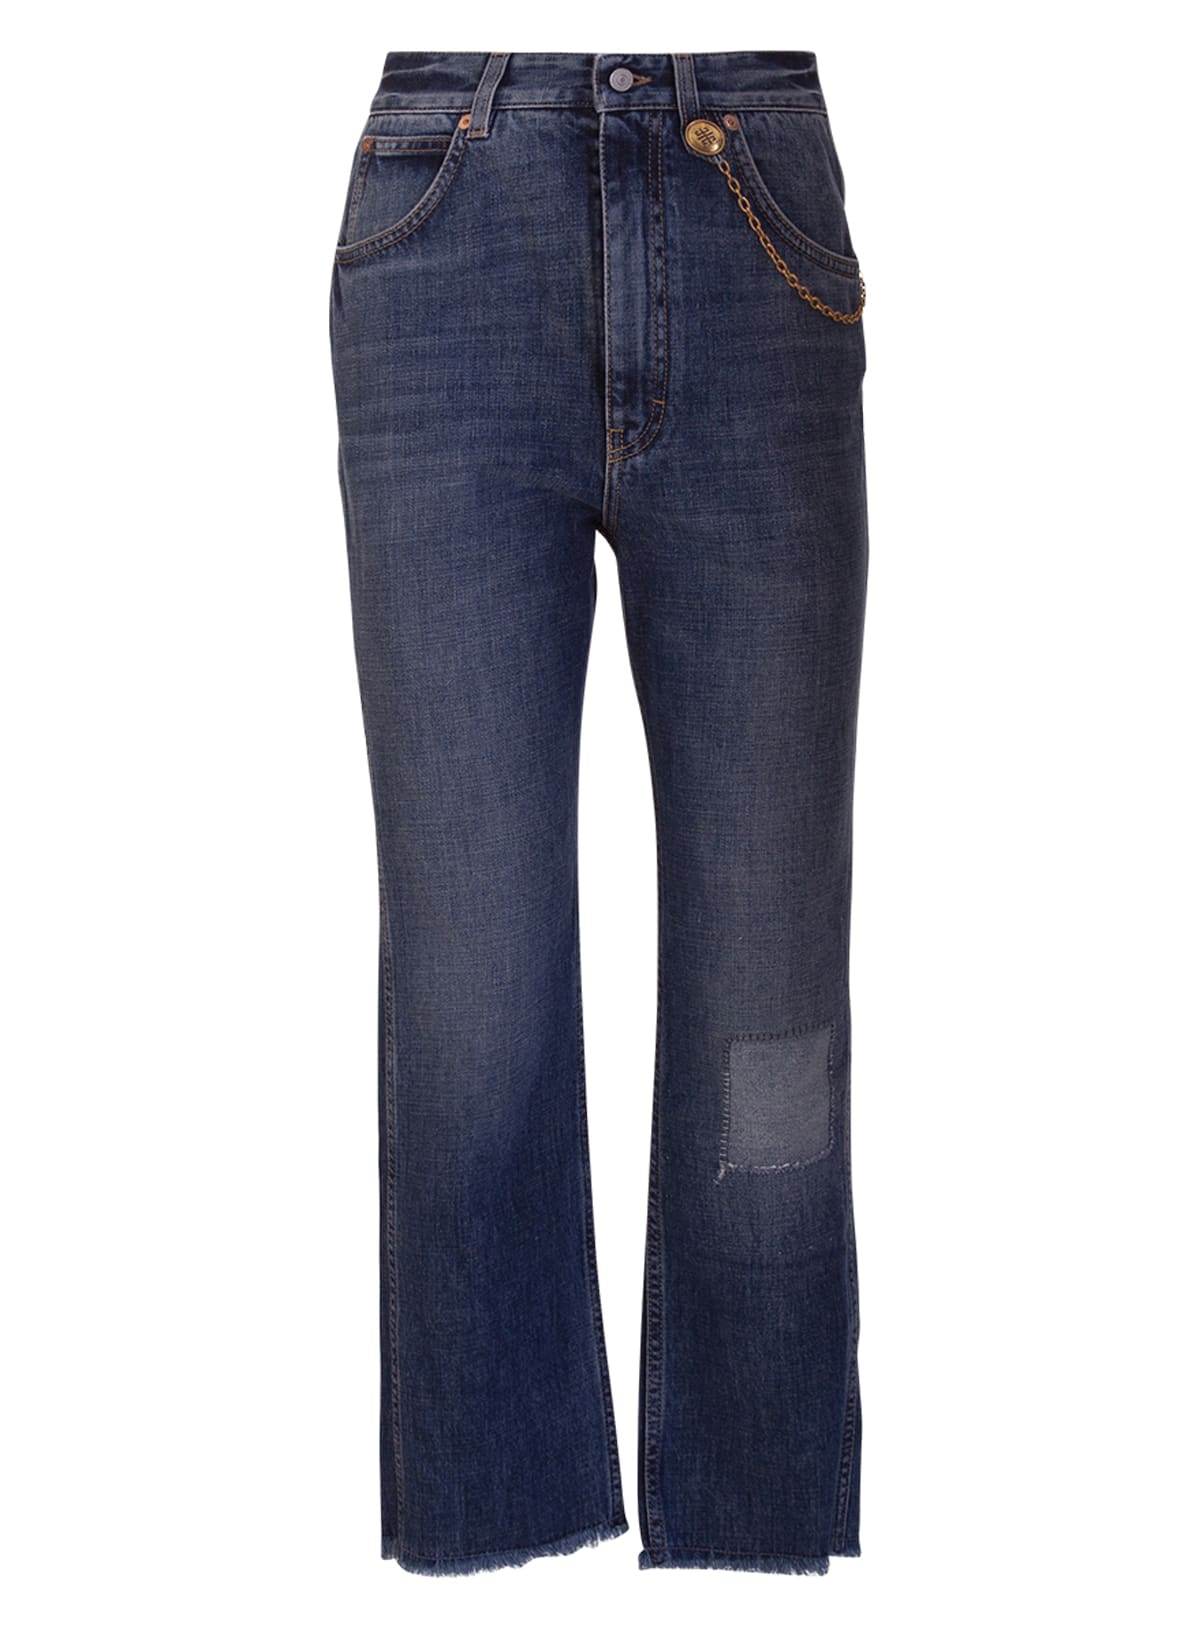 Givenchy MID-RISE CROPPED JEANS